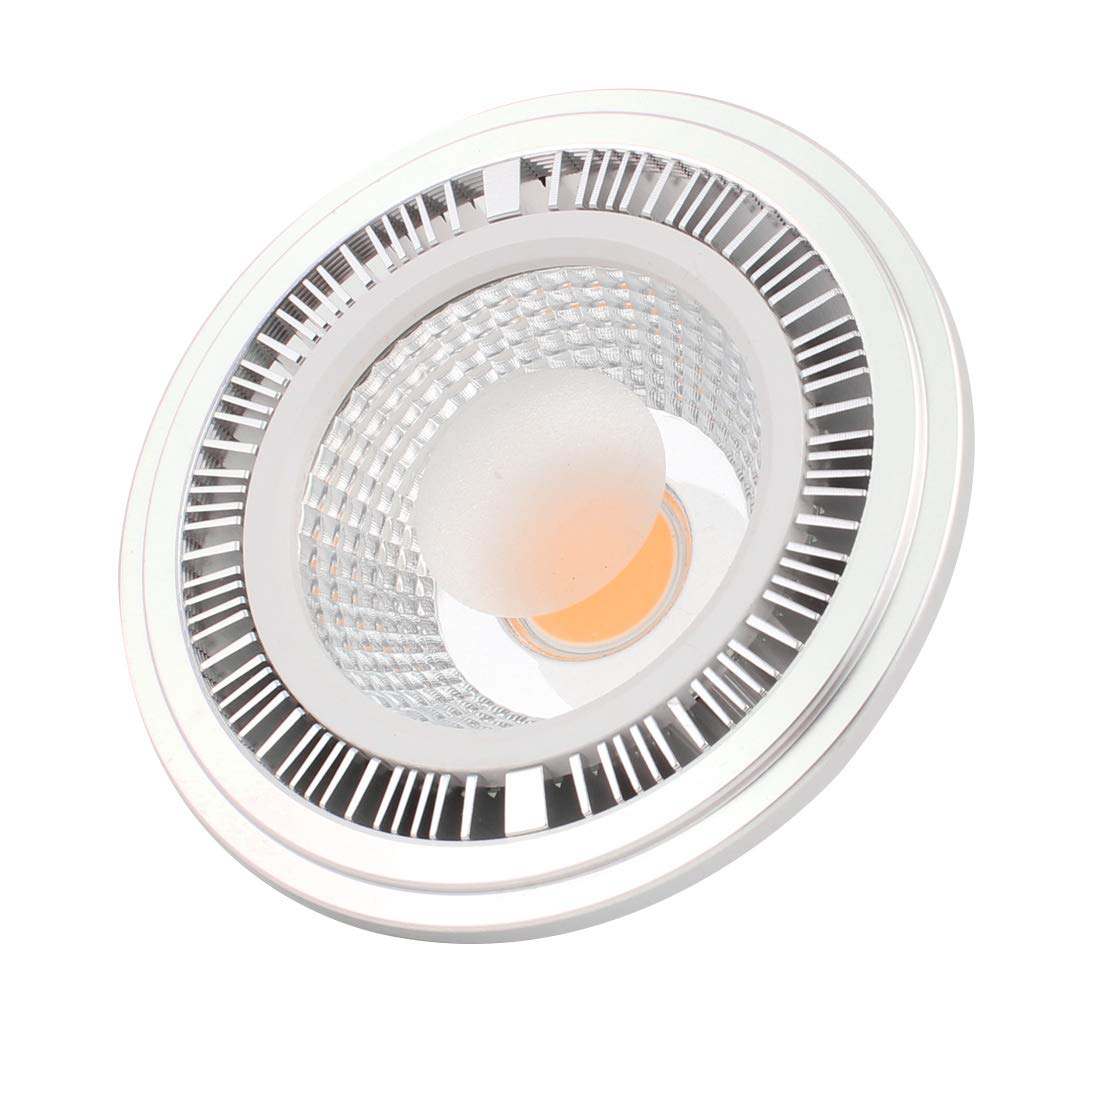 sourcing map DC12V 5W COB AR111 GU10 Base 3000K 2P Connettore lampada LED lampadina faretto